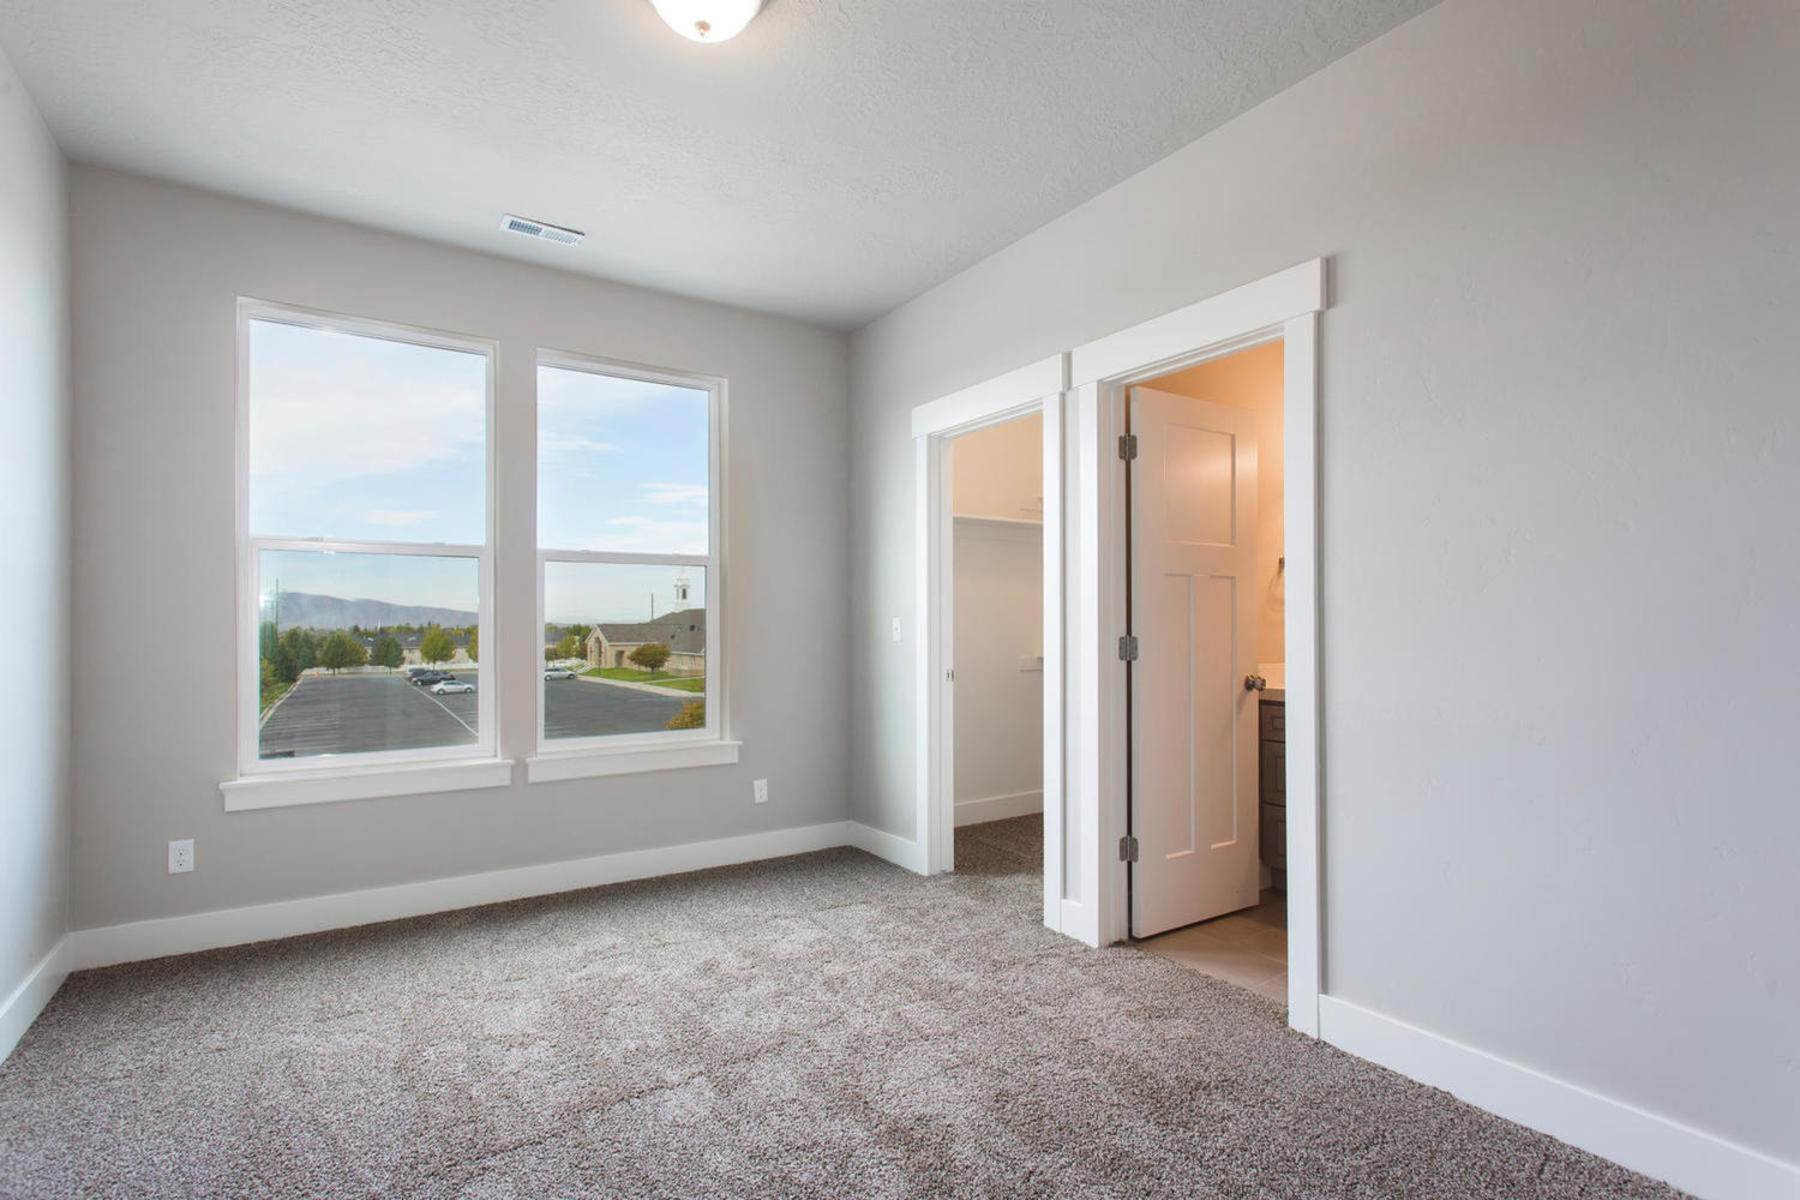 17. townhouses for Sale at The Midtown Unit 36 at the Ridge at Spanish Fork 898 South 2560 East, #36 Spanish Fork, Utah 84660 United States